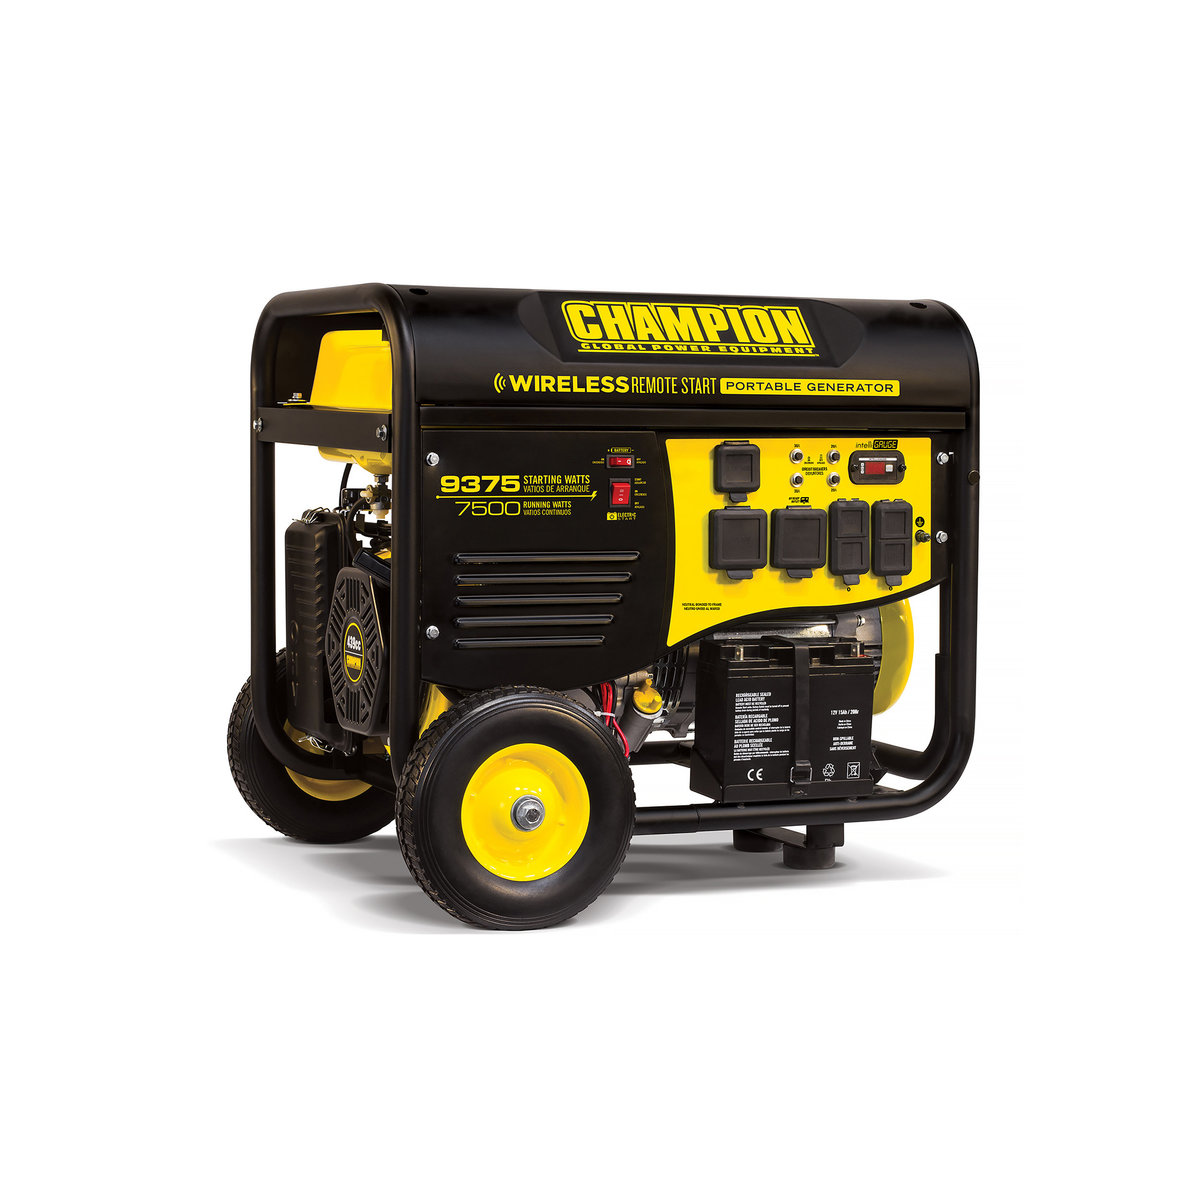 Champion 7500 9375w Remote Start Generator Rv Ready Carb Starter Product View A Different Image Of